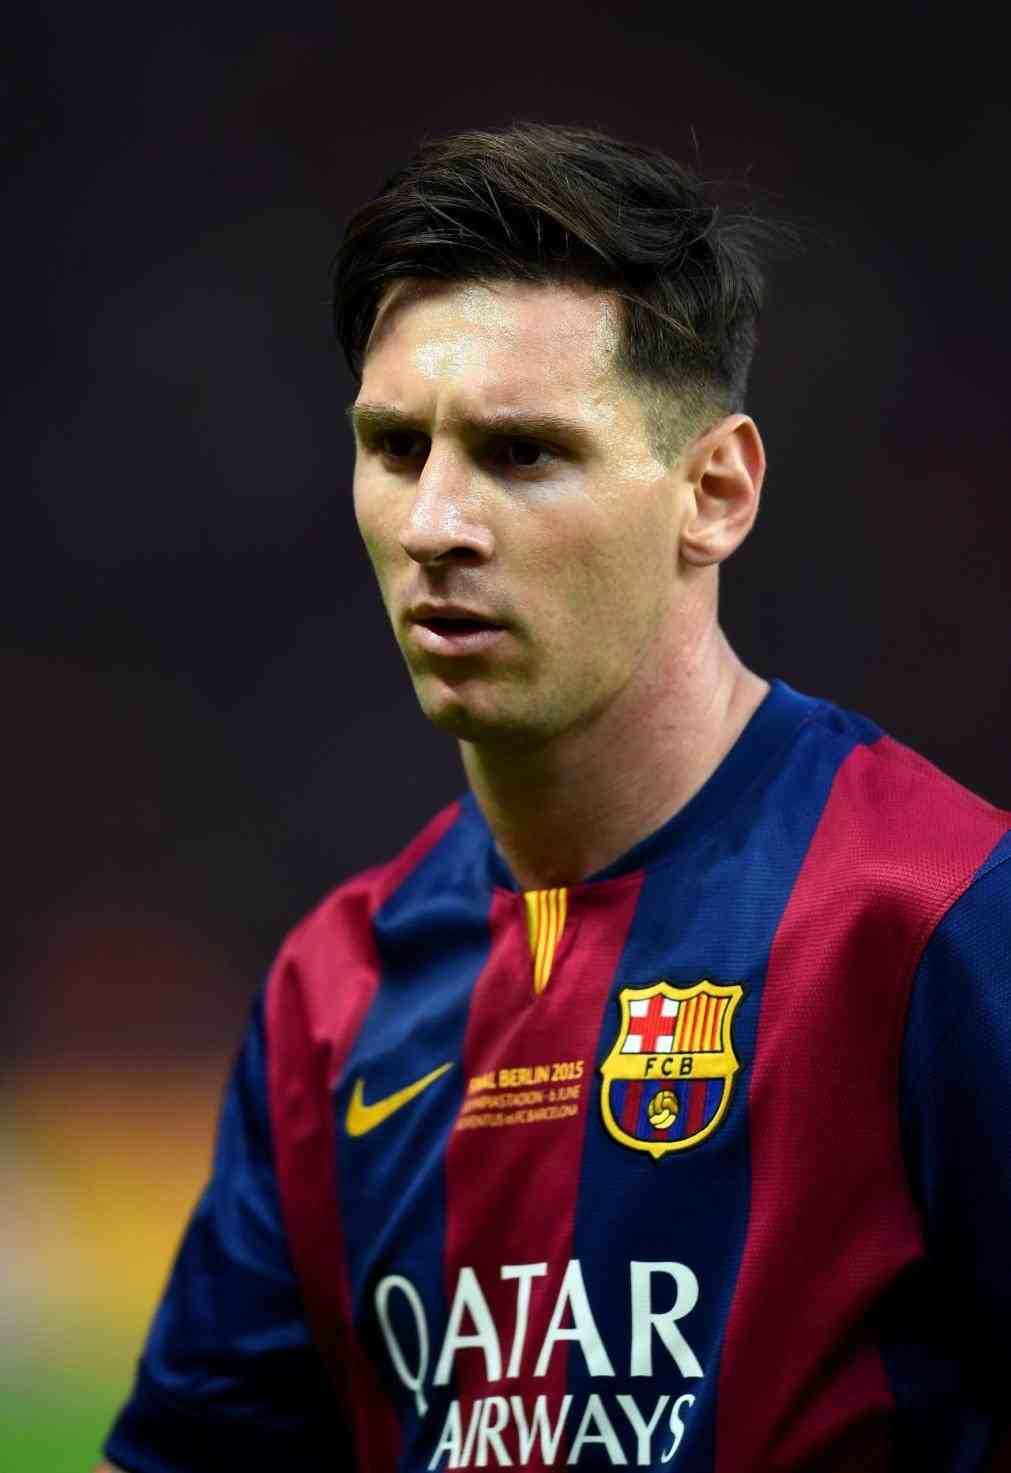 Messi 2016 Hairstyle